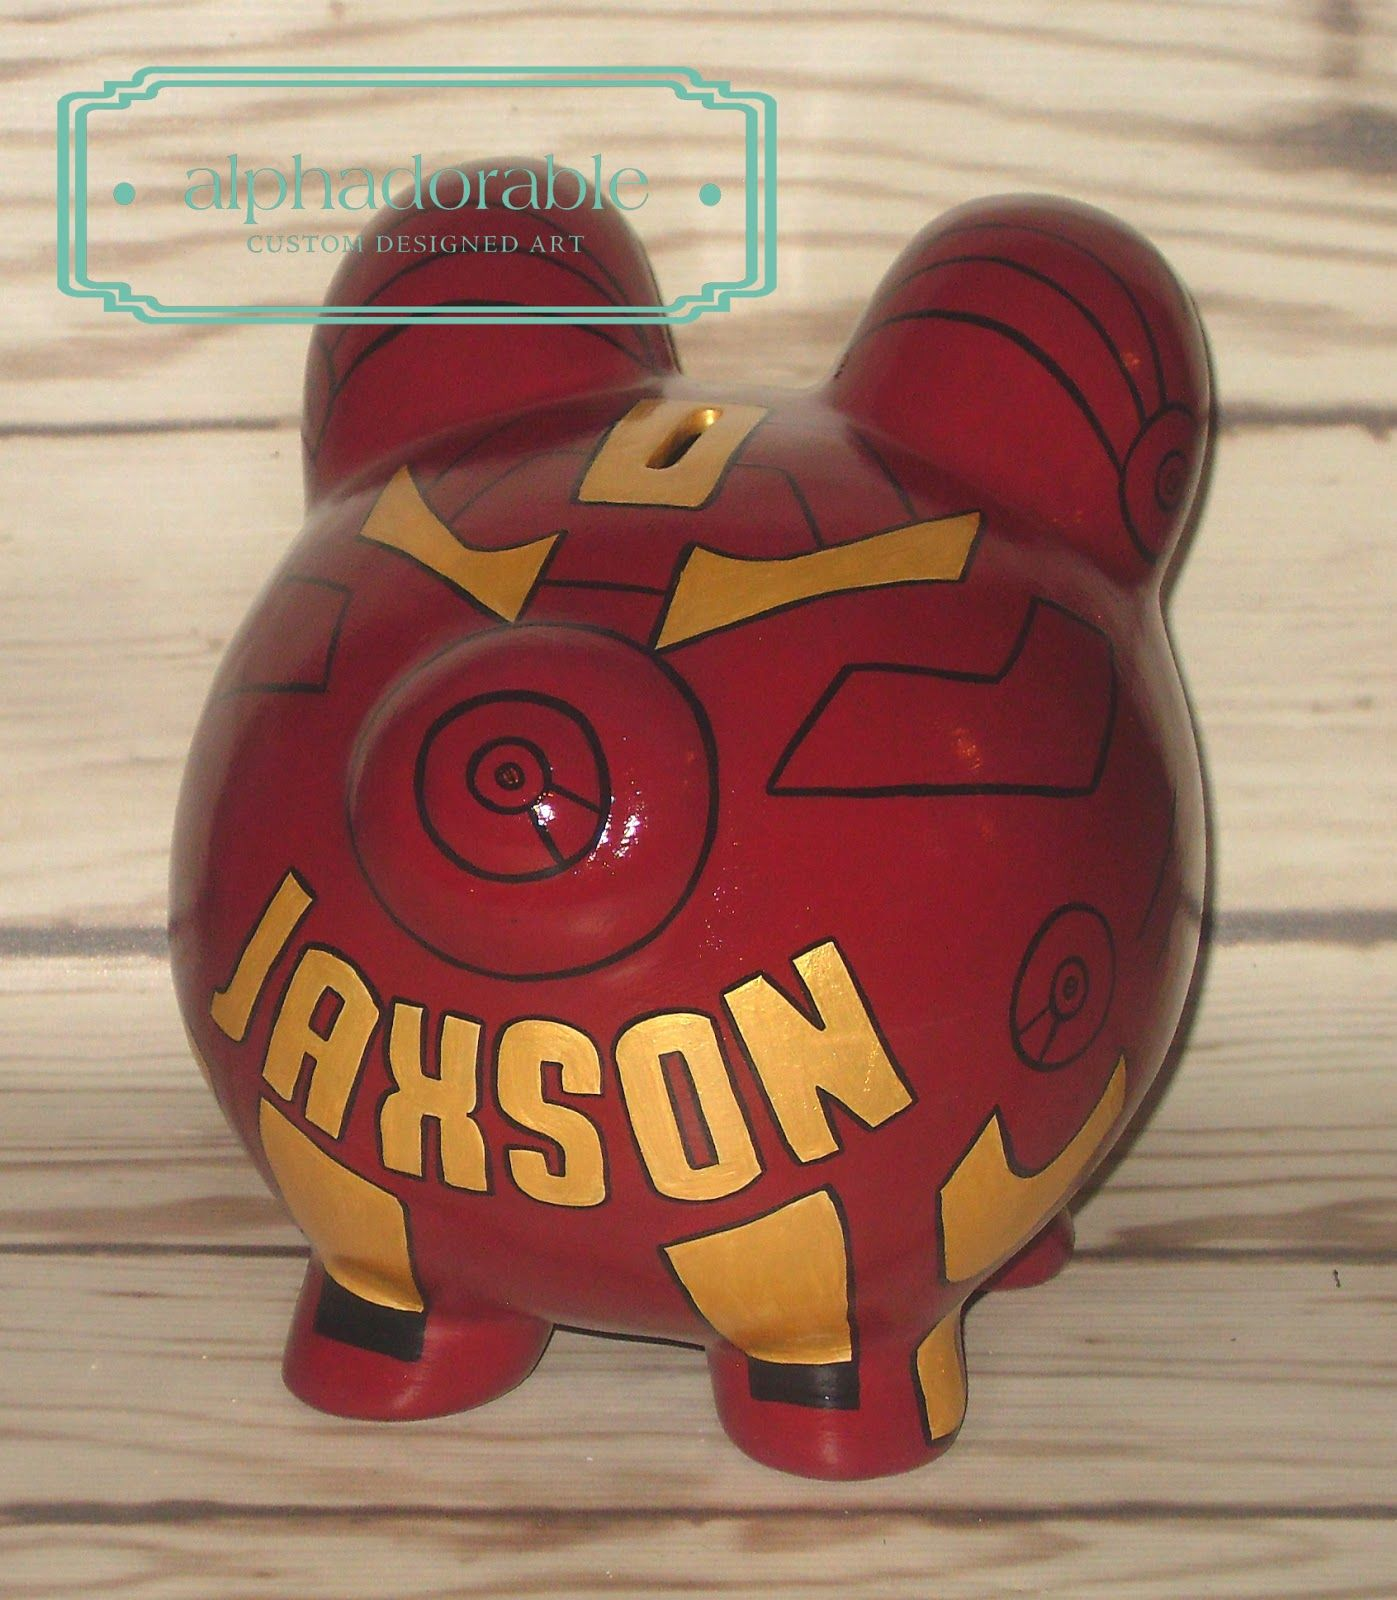 Star Wars Coin Banks Alphadorable Custom Super Hero And Star Wars Hand Painted